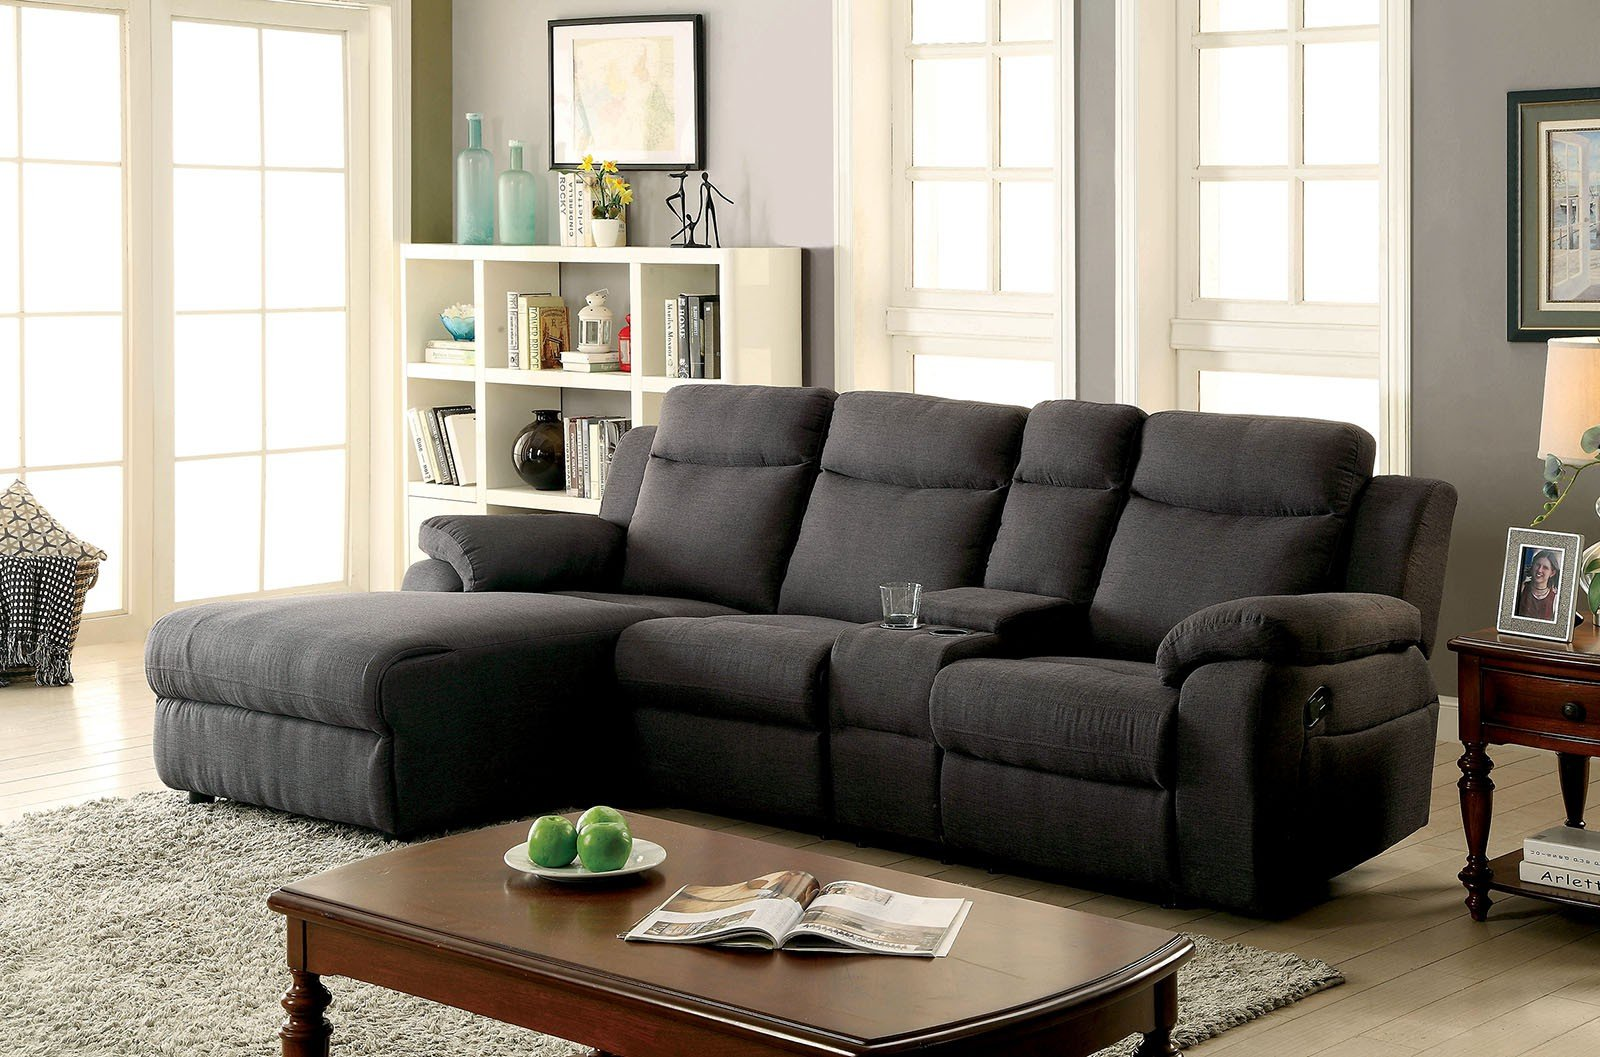 Sectional Sofas with Recliners Furniture